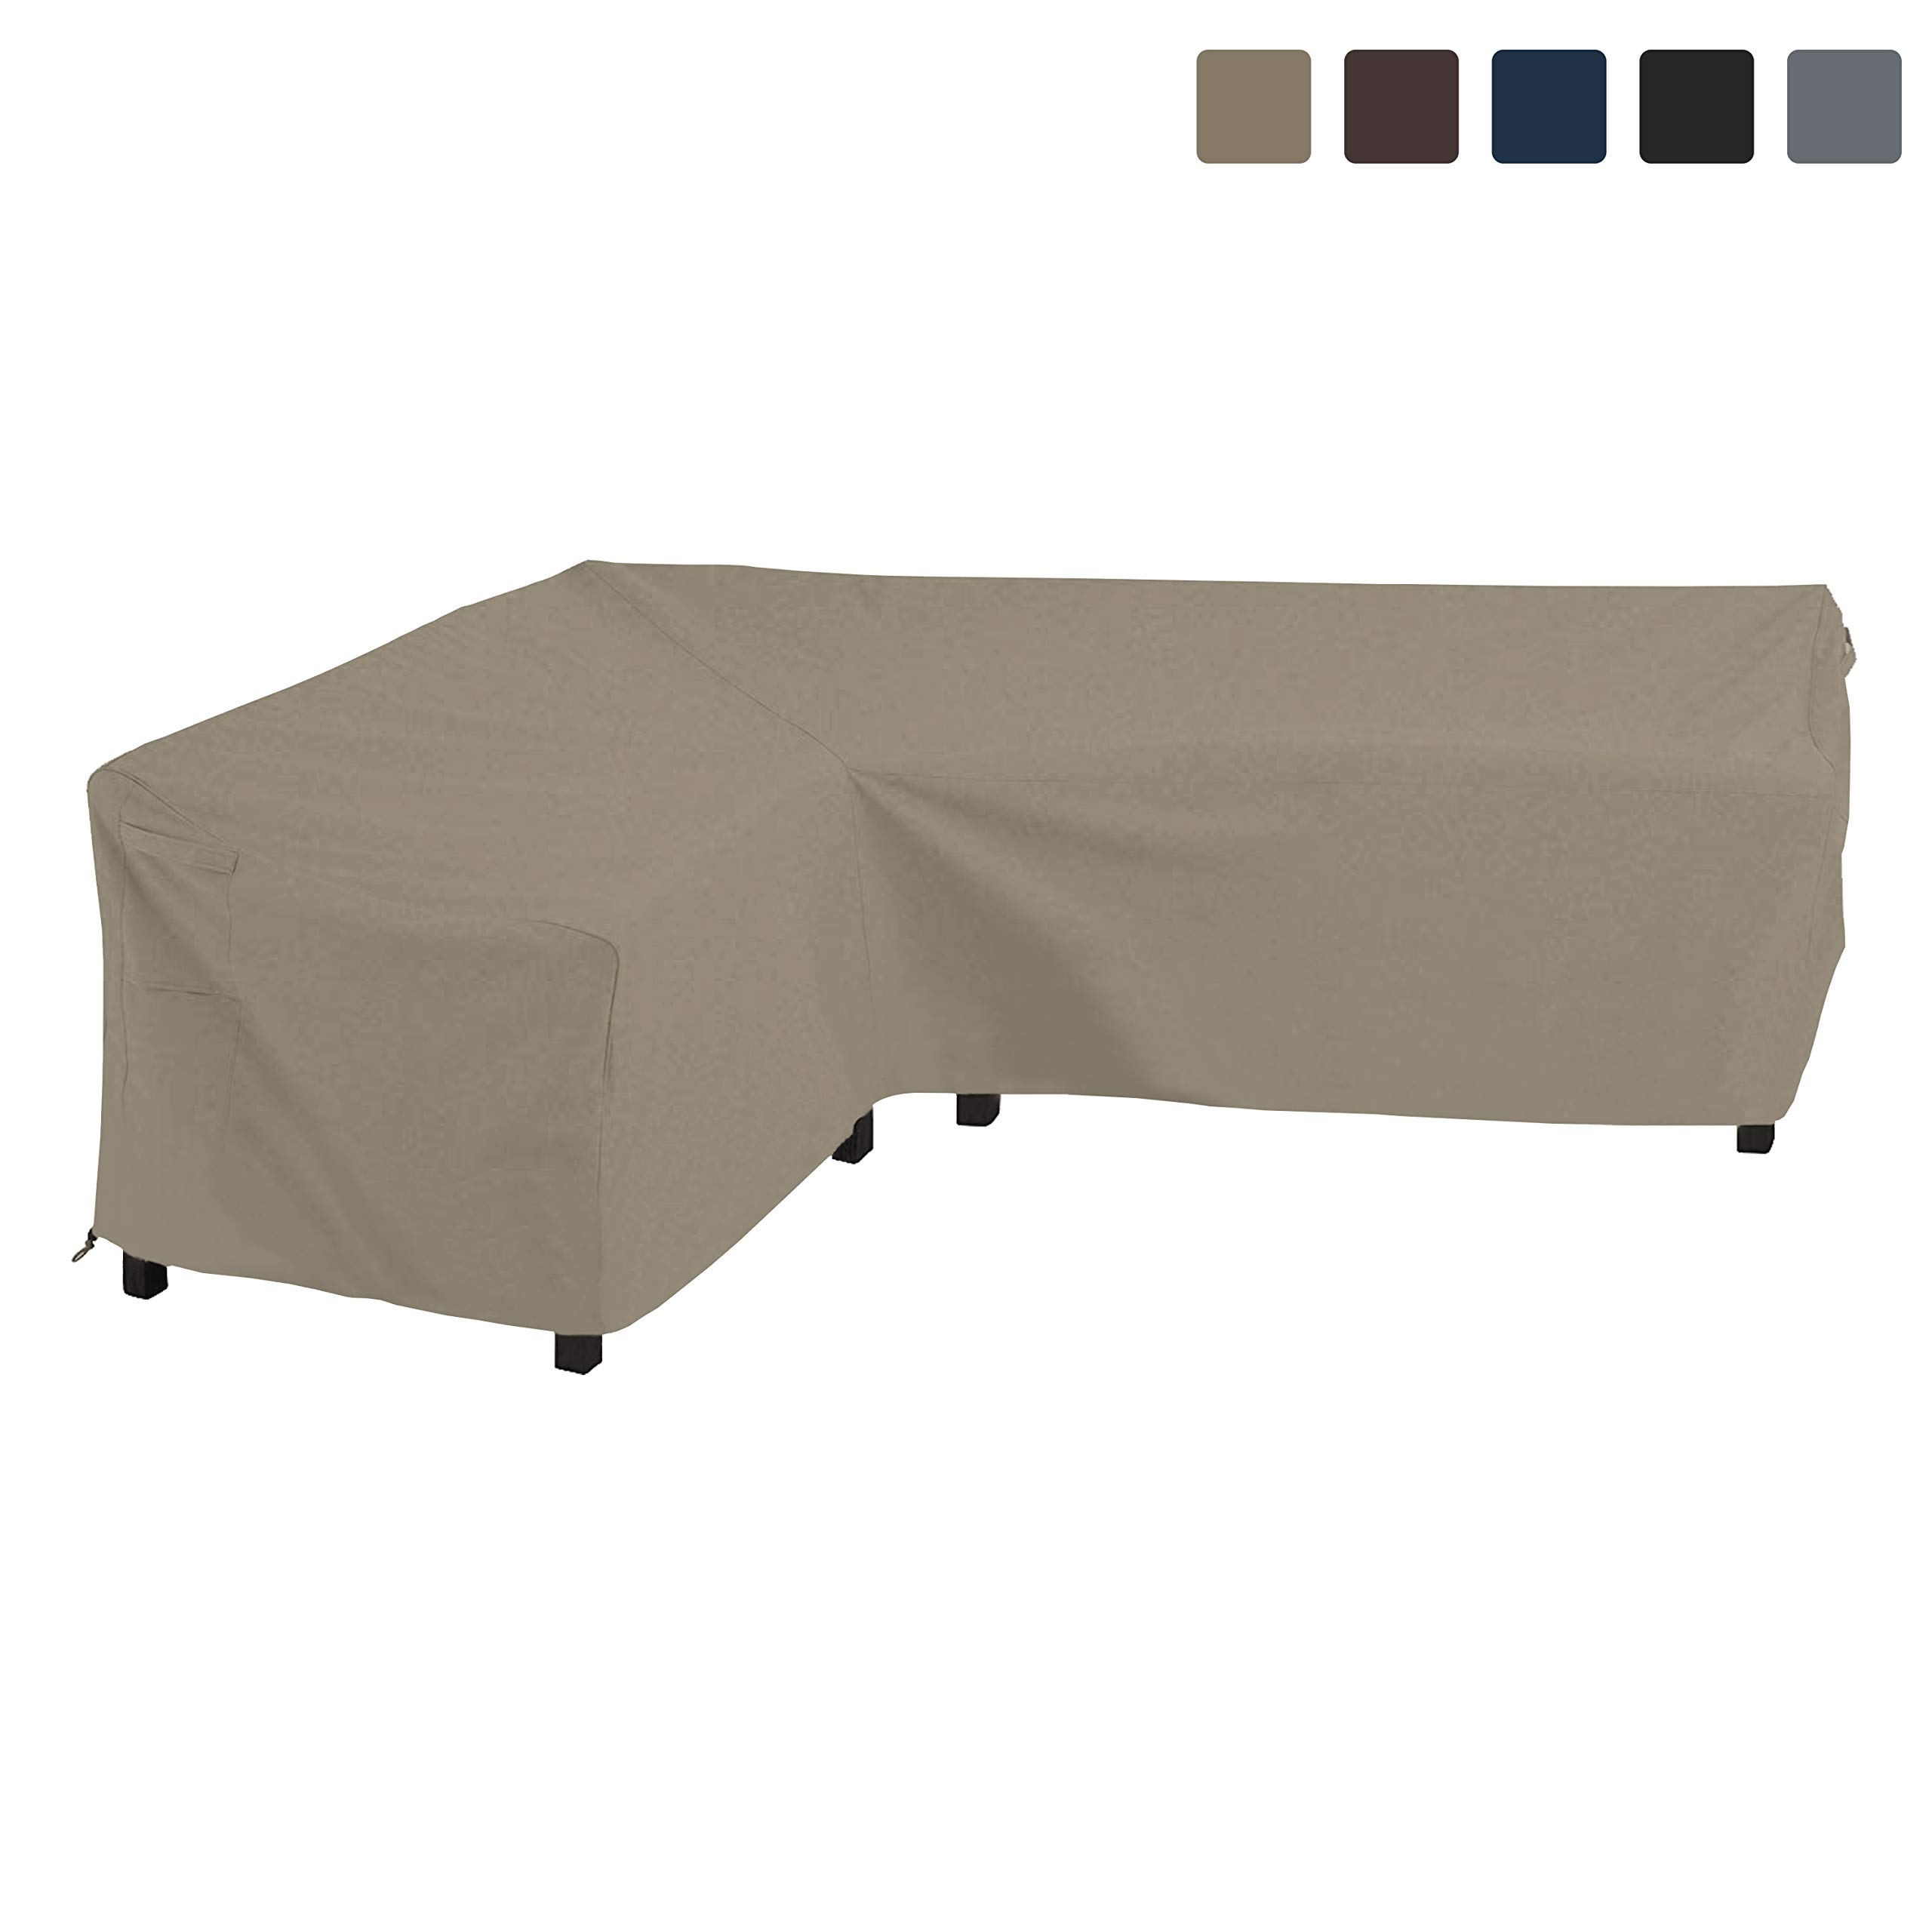 COVERS & ALL Patio Sectional Sofa Cover 12 Oz Waterproof - 100% UV & Weather Resistant PVC Coated 100'' x 130'' x 34''D x 38'' H - L Shape Sofa Cover for Indoor/Outdoor (Left Facing Sofa, Beige)